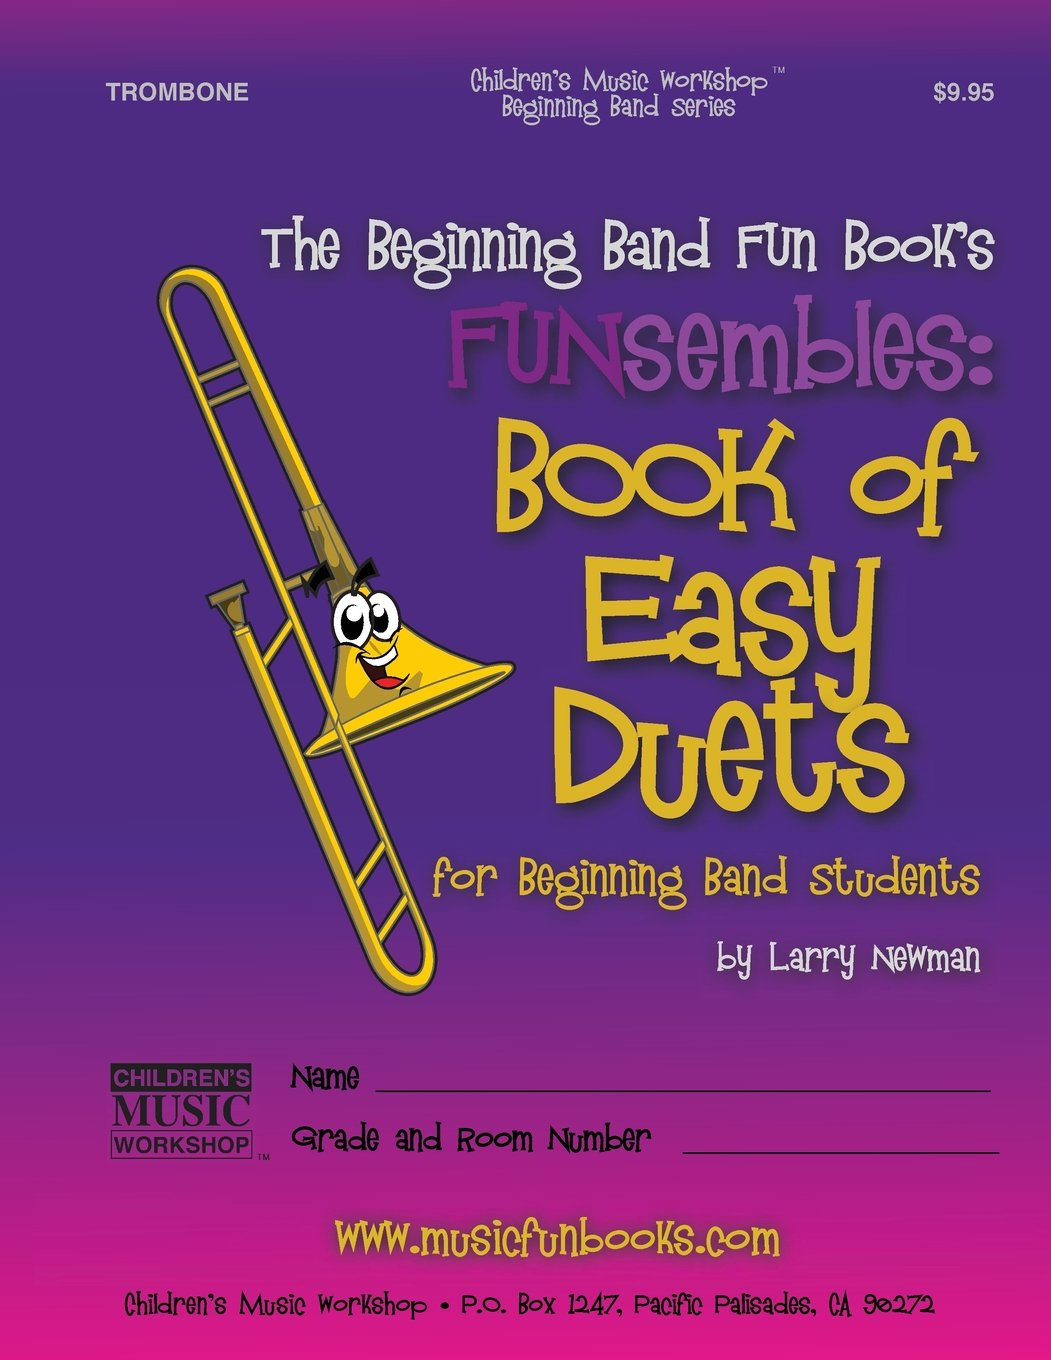 The Beginning Band Fun Book's FUNsembles: Book of Easy Duets (Trombone): for Beginning Band Students